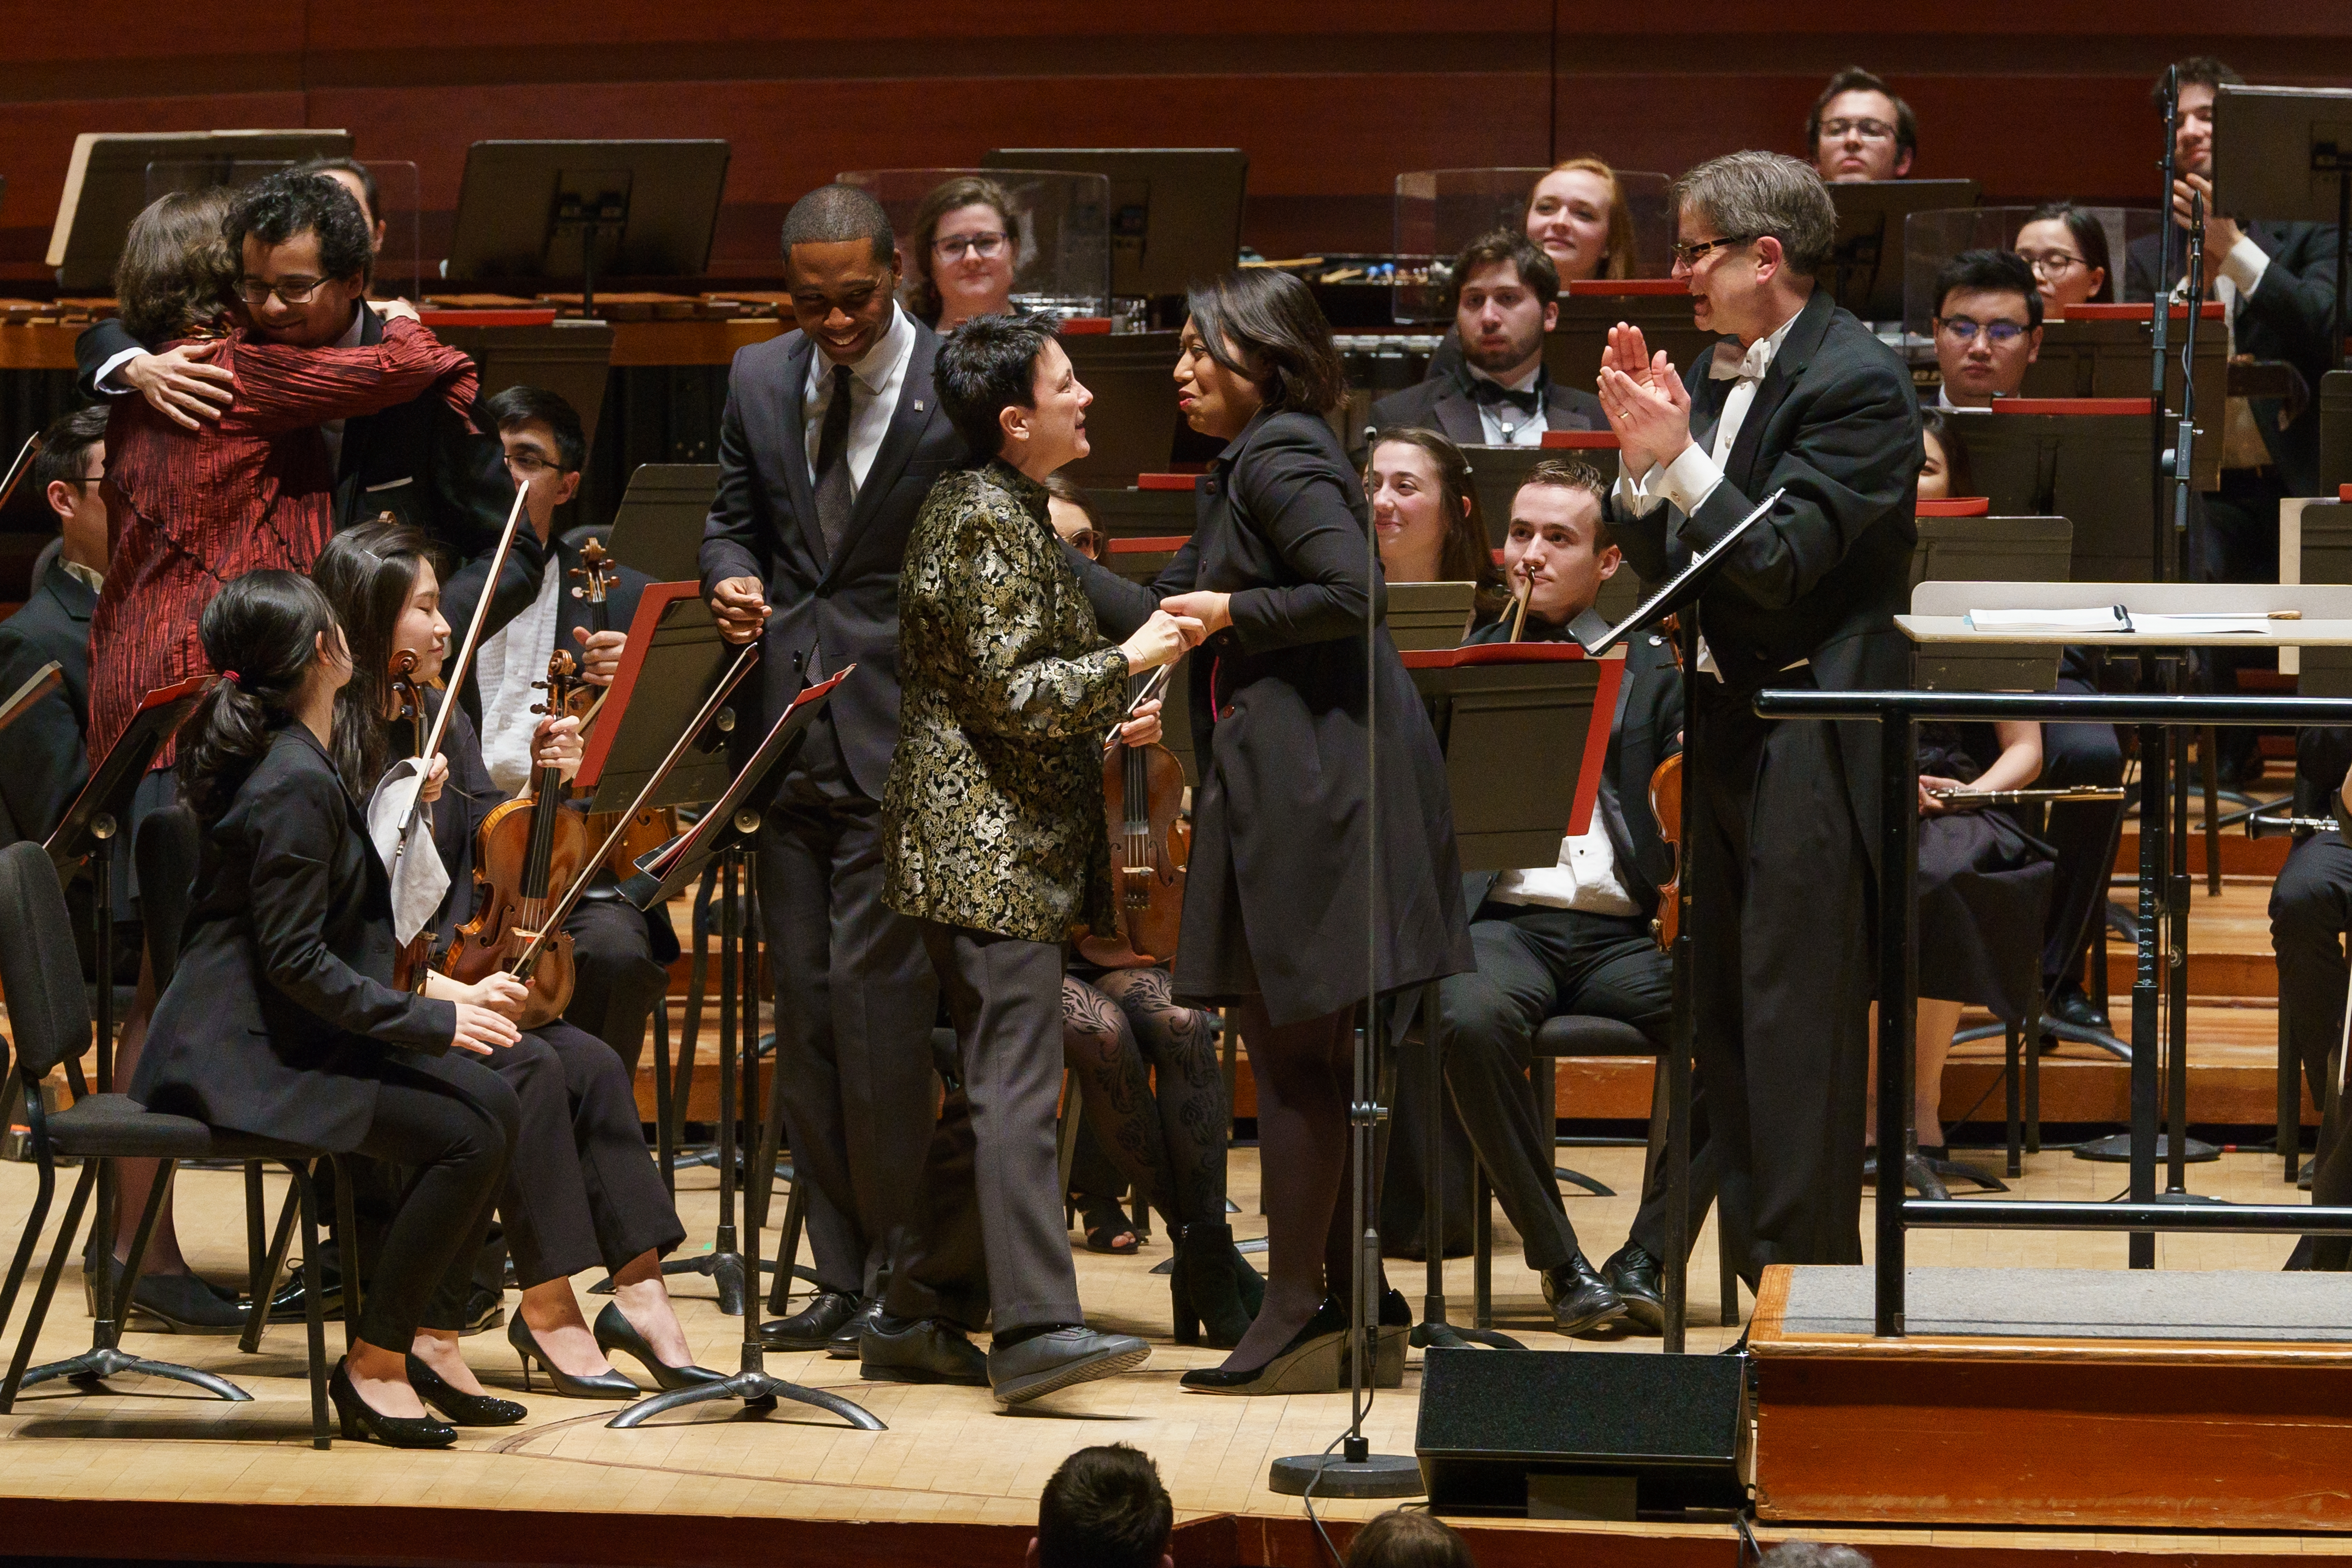 composer greets conductor on stage